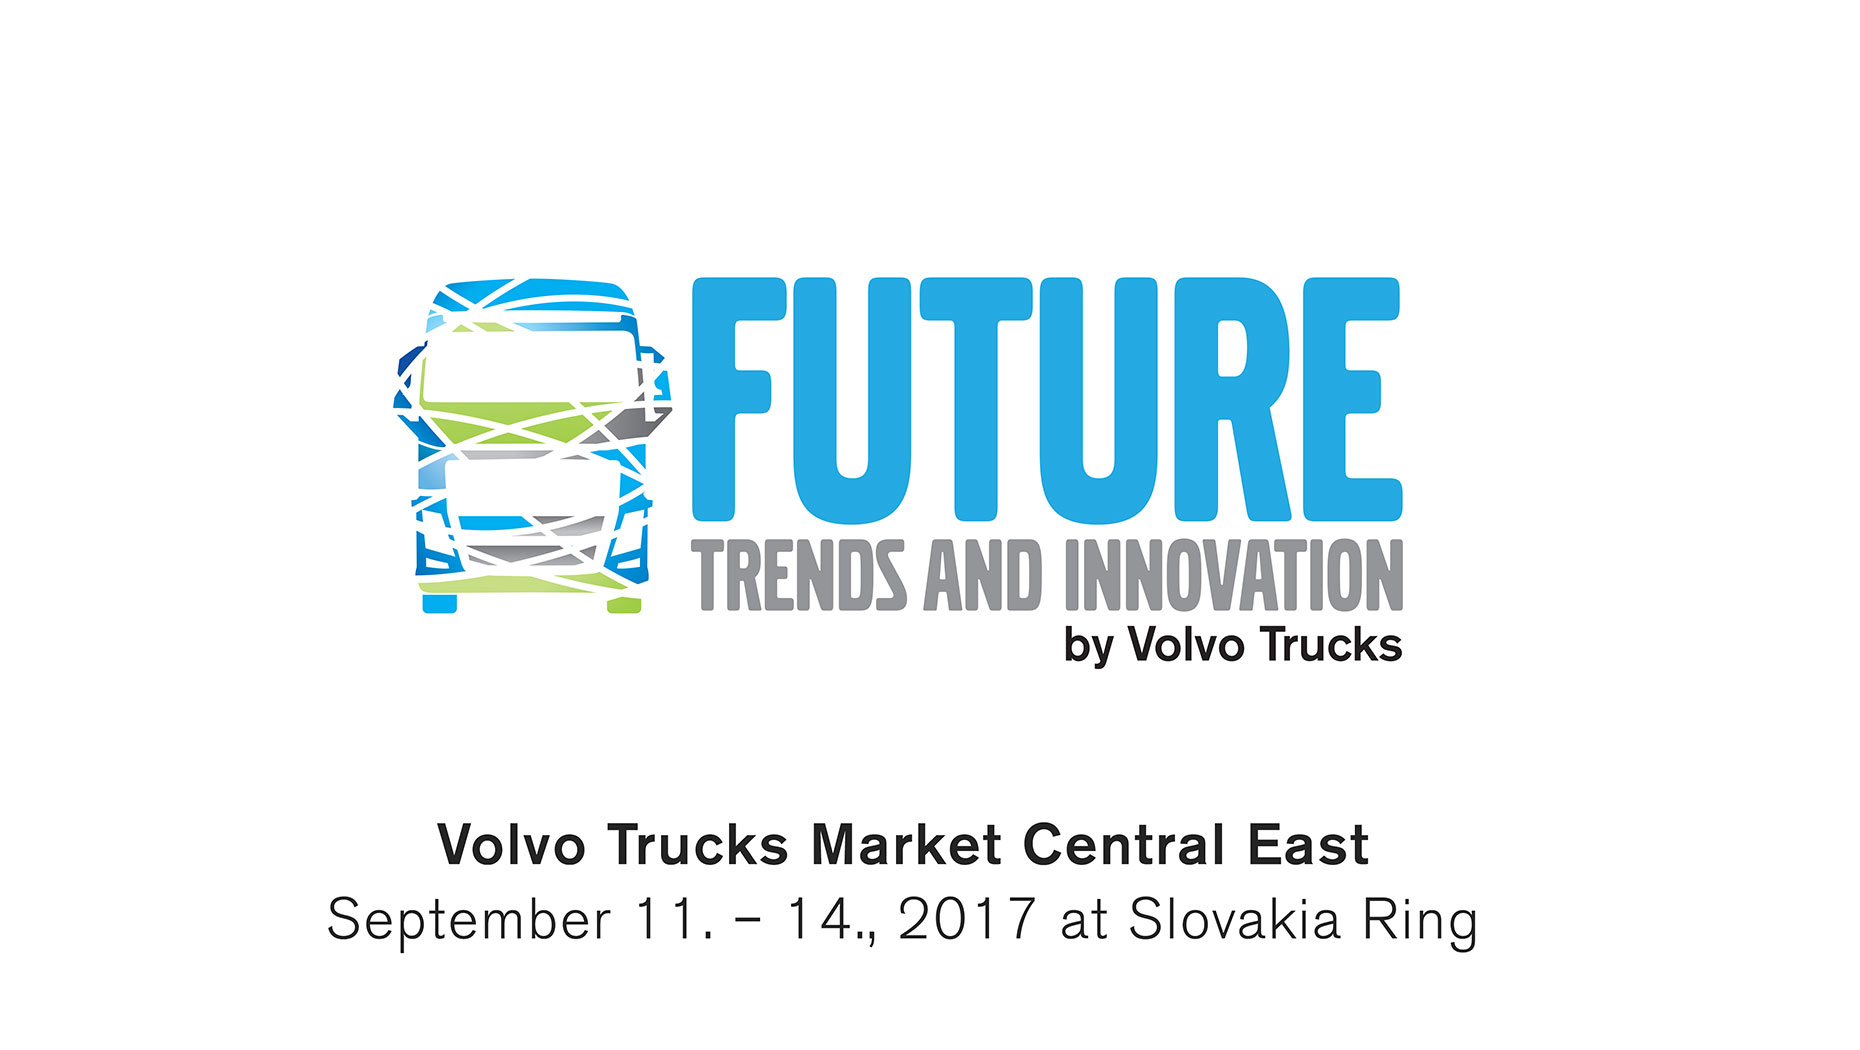 Future Trends & Innovation by Volvo Trucks 2017